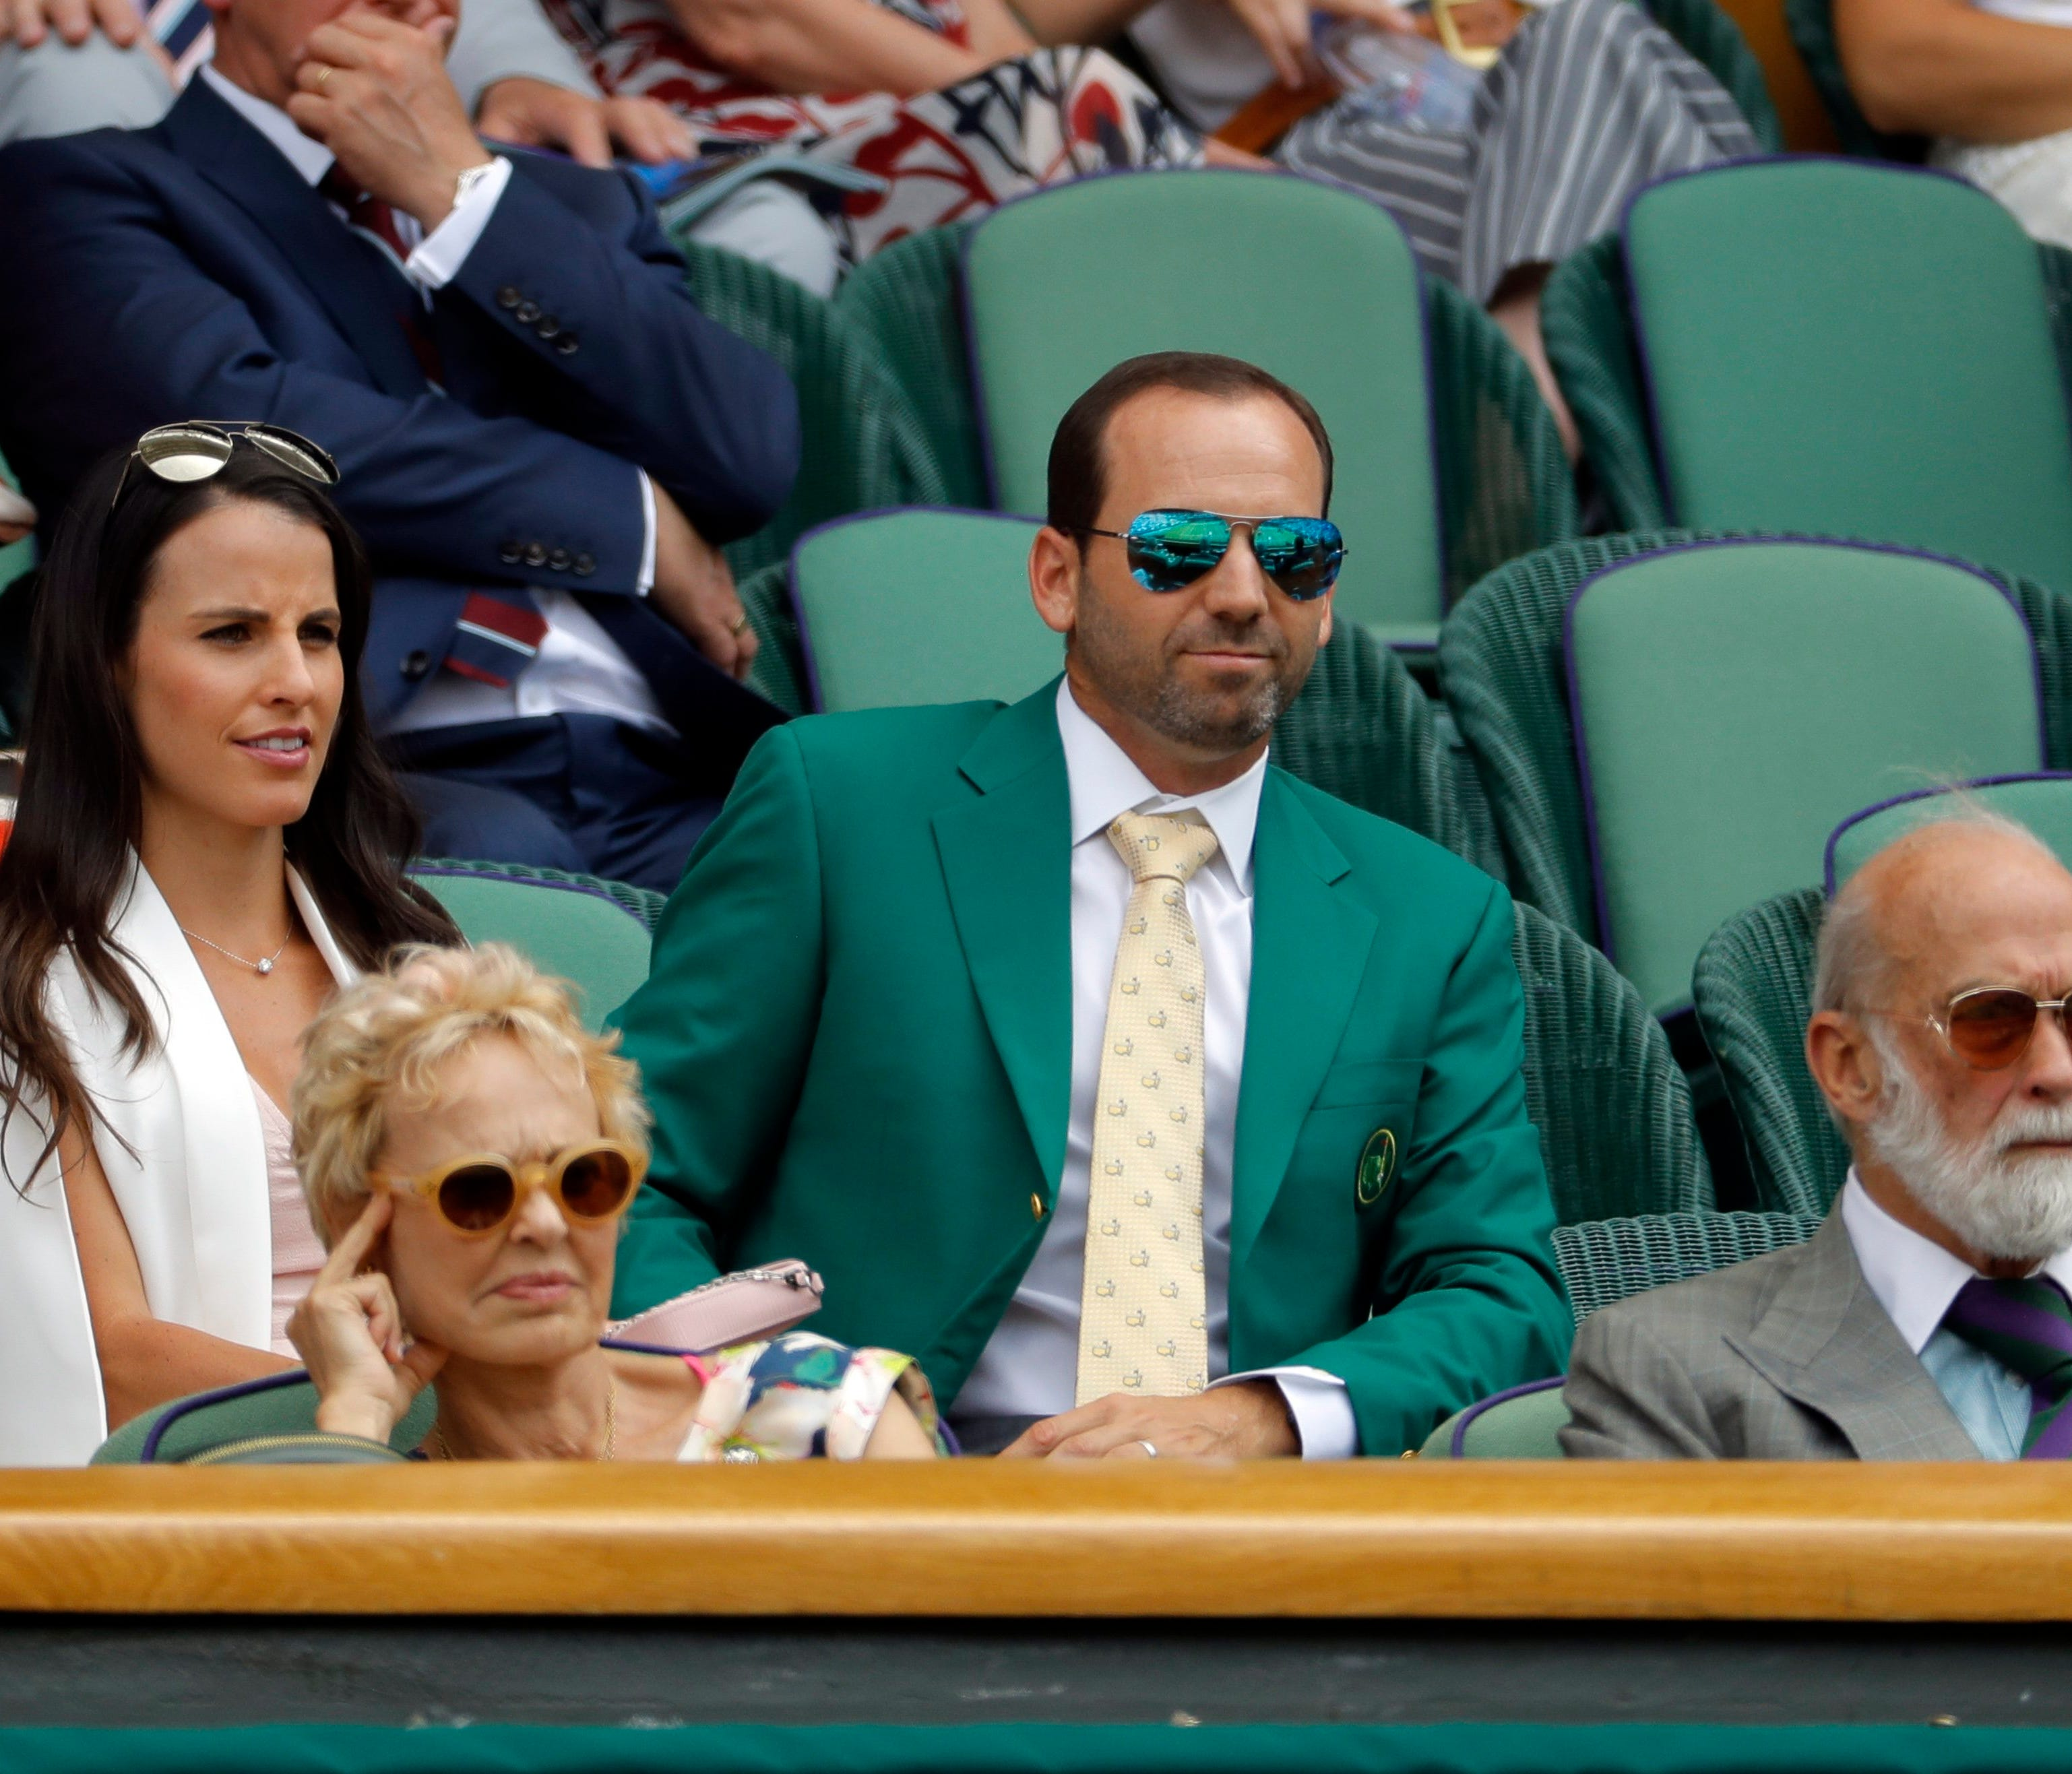 Golfer Sergio Garcia, wearing his green Masters jacket, centre and fiancee Angela Akins sit in the Royal Box on day five at the Wimbledon Tennis Championships in London Friday, July 7, 2017. (AP Photo/Alastair Grant)